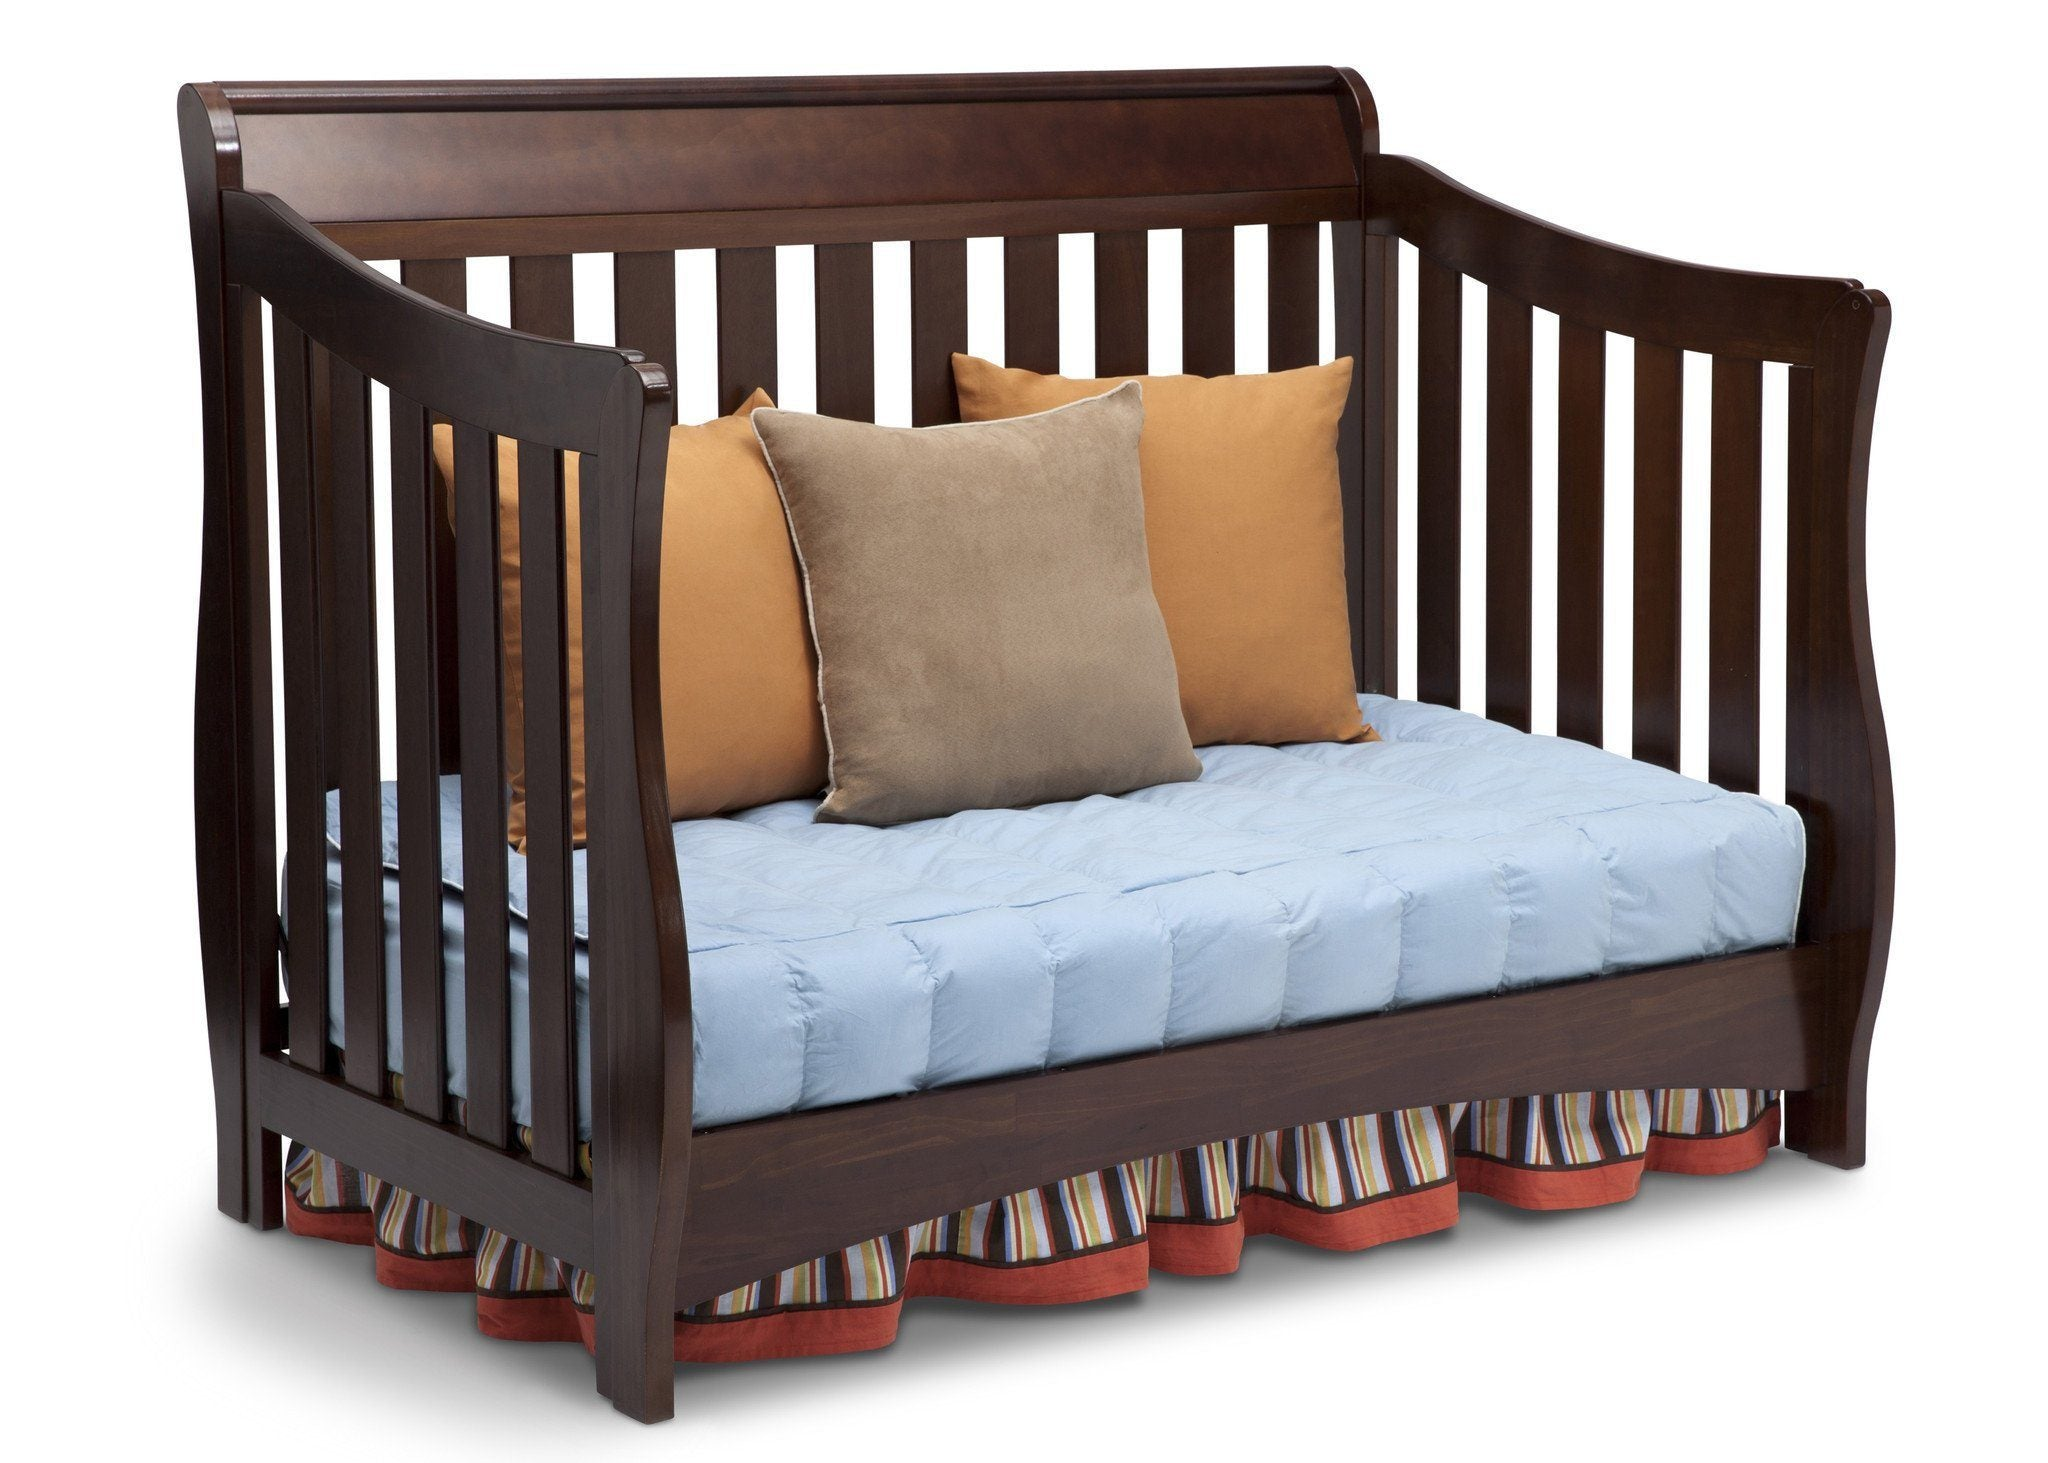 Delta Children Chocolate (204) Bentley 'S' Series 4-in-1 Crib, Day Bed Conversion b4b